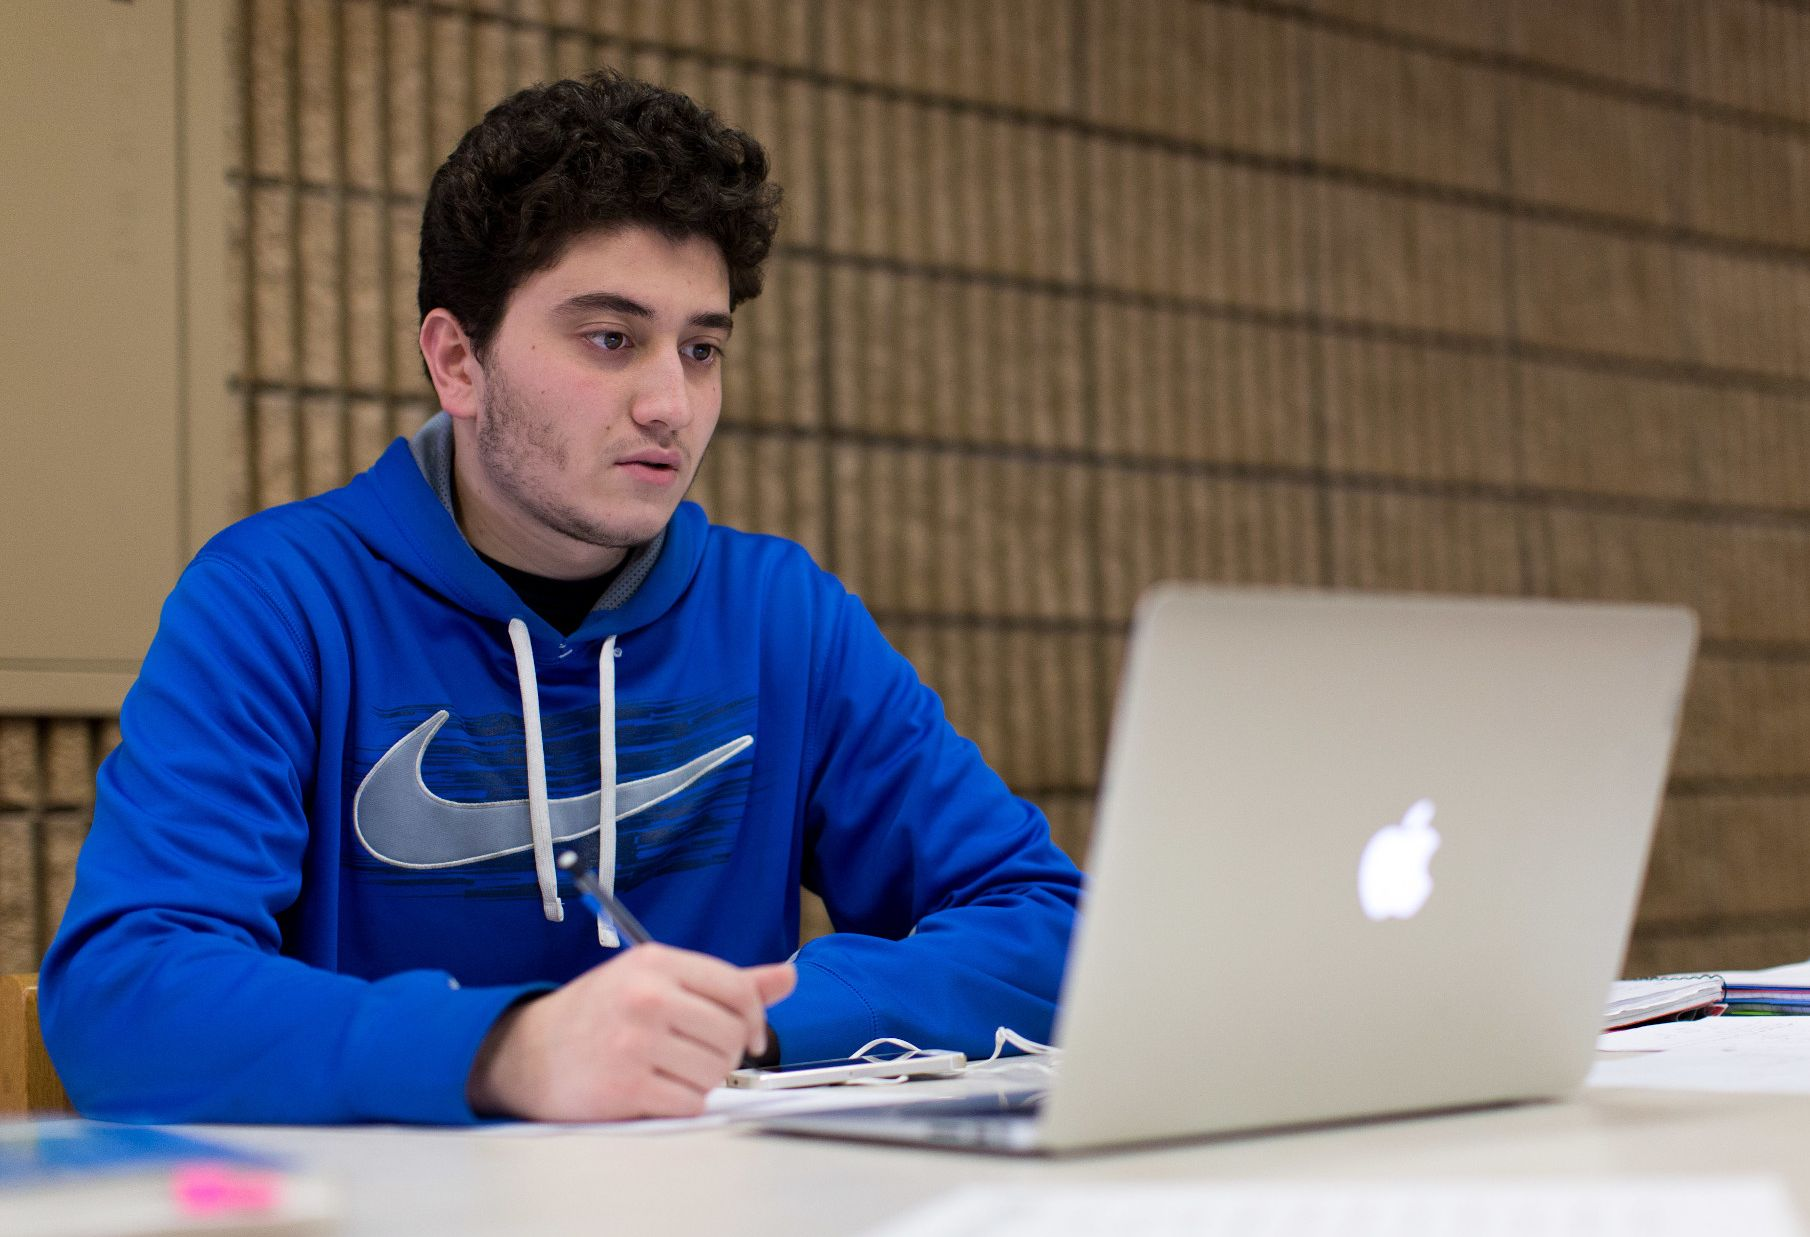 A male student in a blue sweatshirt looks at his laptop